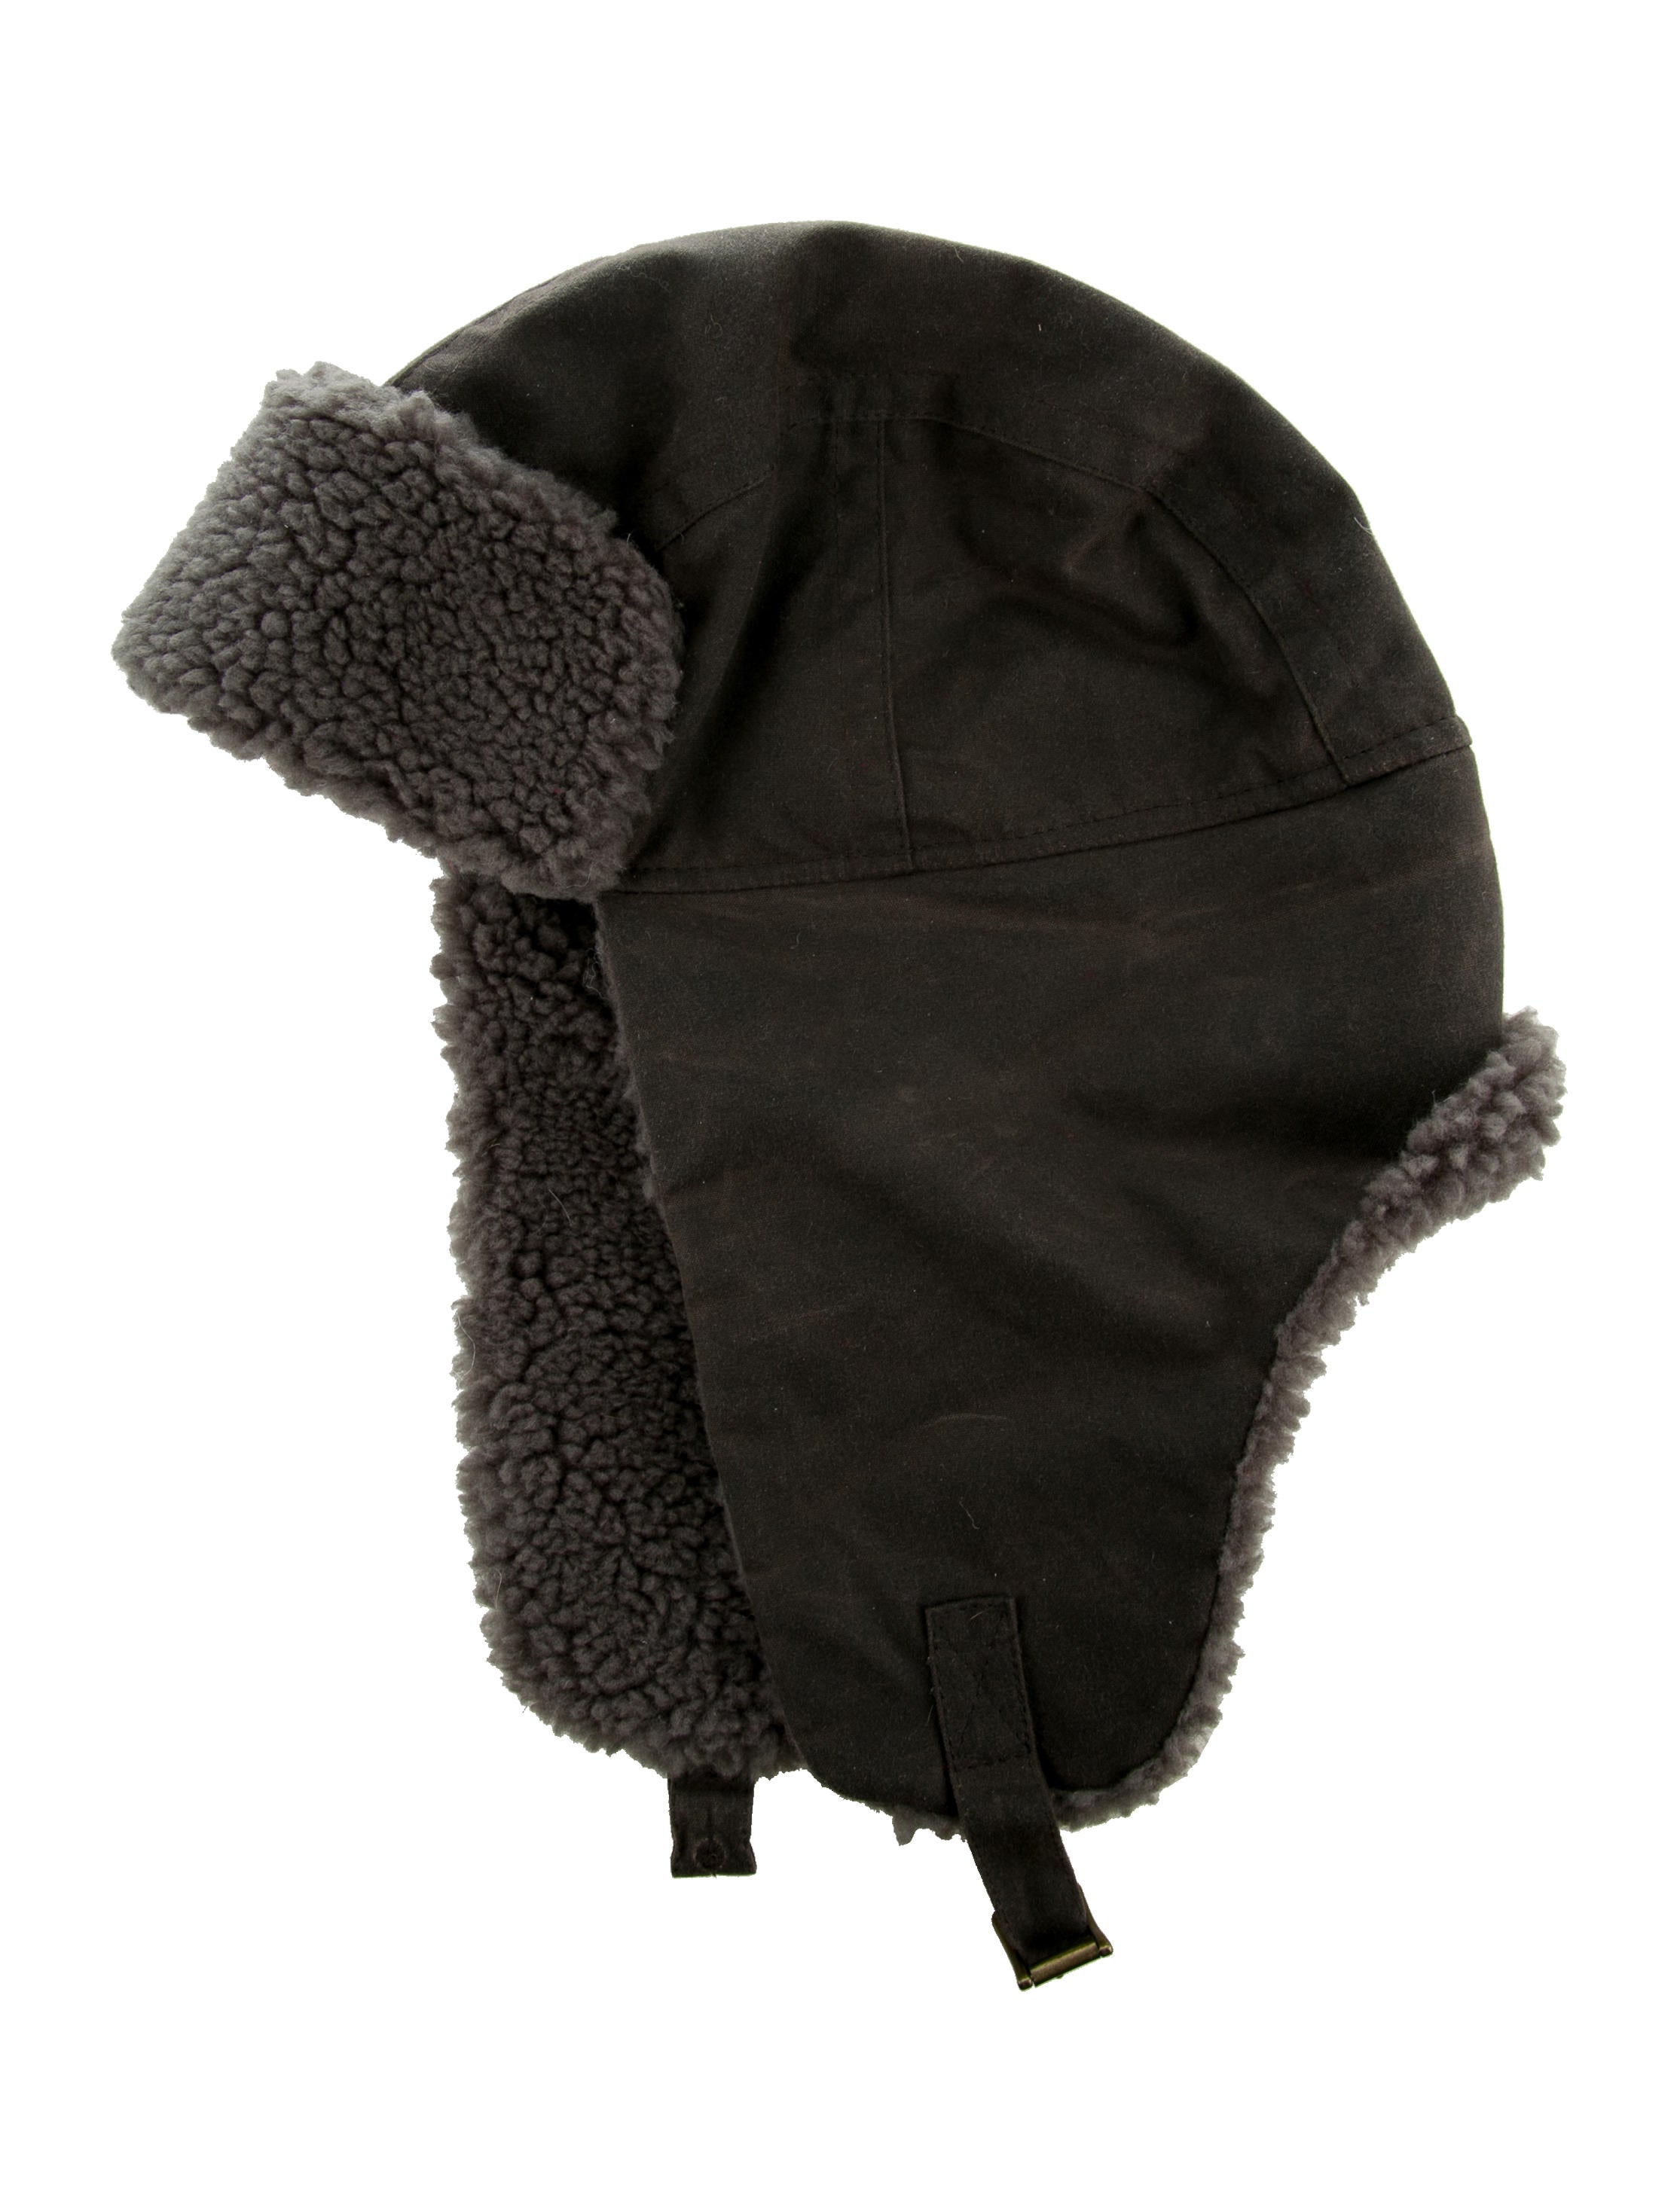 Sherpa Lined Trapper Hat ($ - $): 30 of items - Shop Sherpa Lined Trapper Hat from ALL your favorite stores & find HUGE SAVINGS up to 80% off Sherpa Lined Trapper Hat, including GREAT DEALS like iXtreme Toddler Boys Sherpa Lined Winter Trapper Ear Flap Hat size T ($).